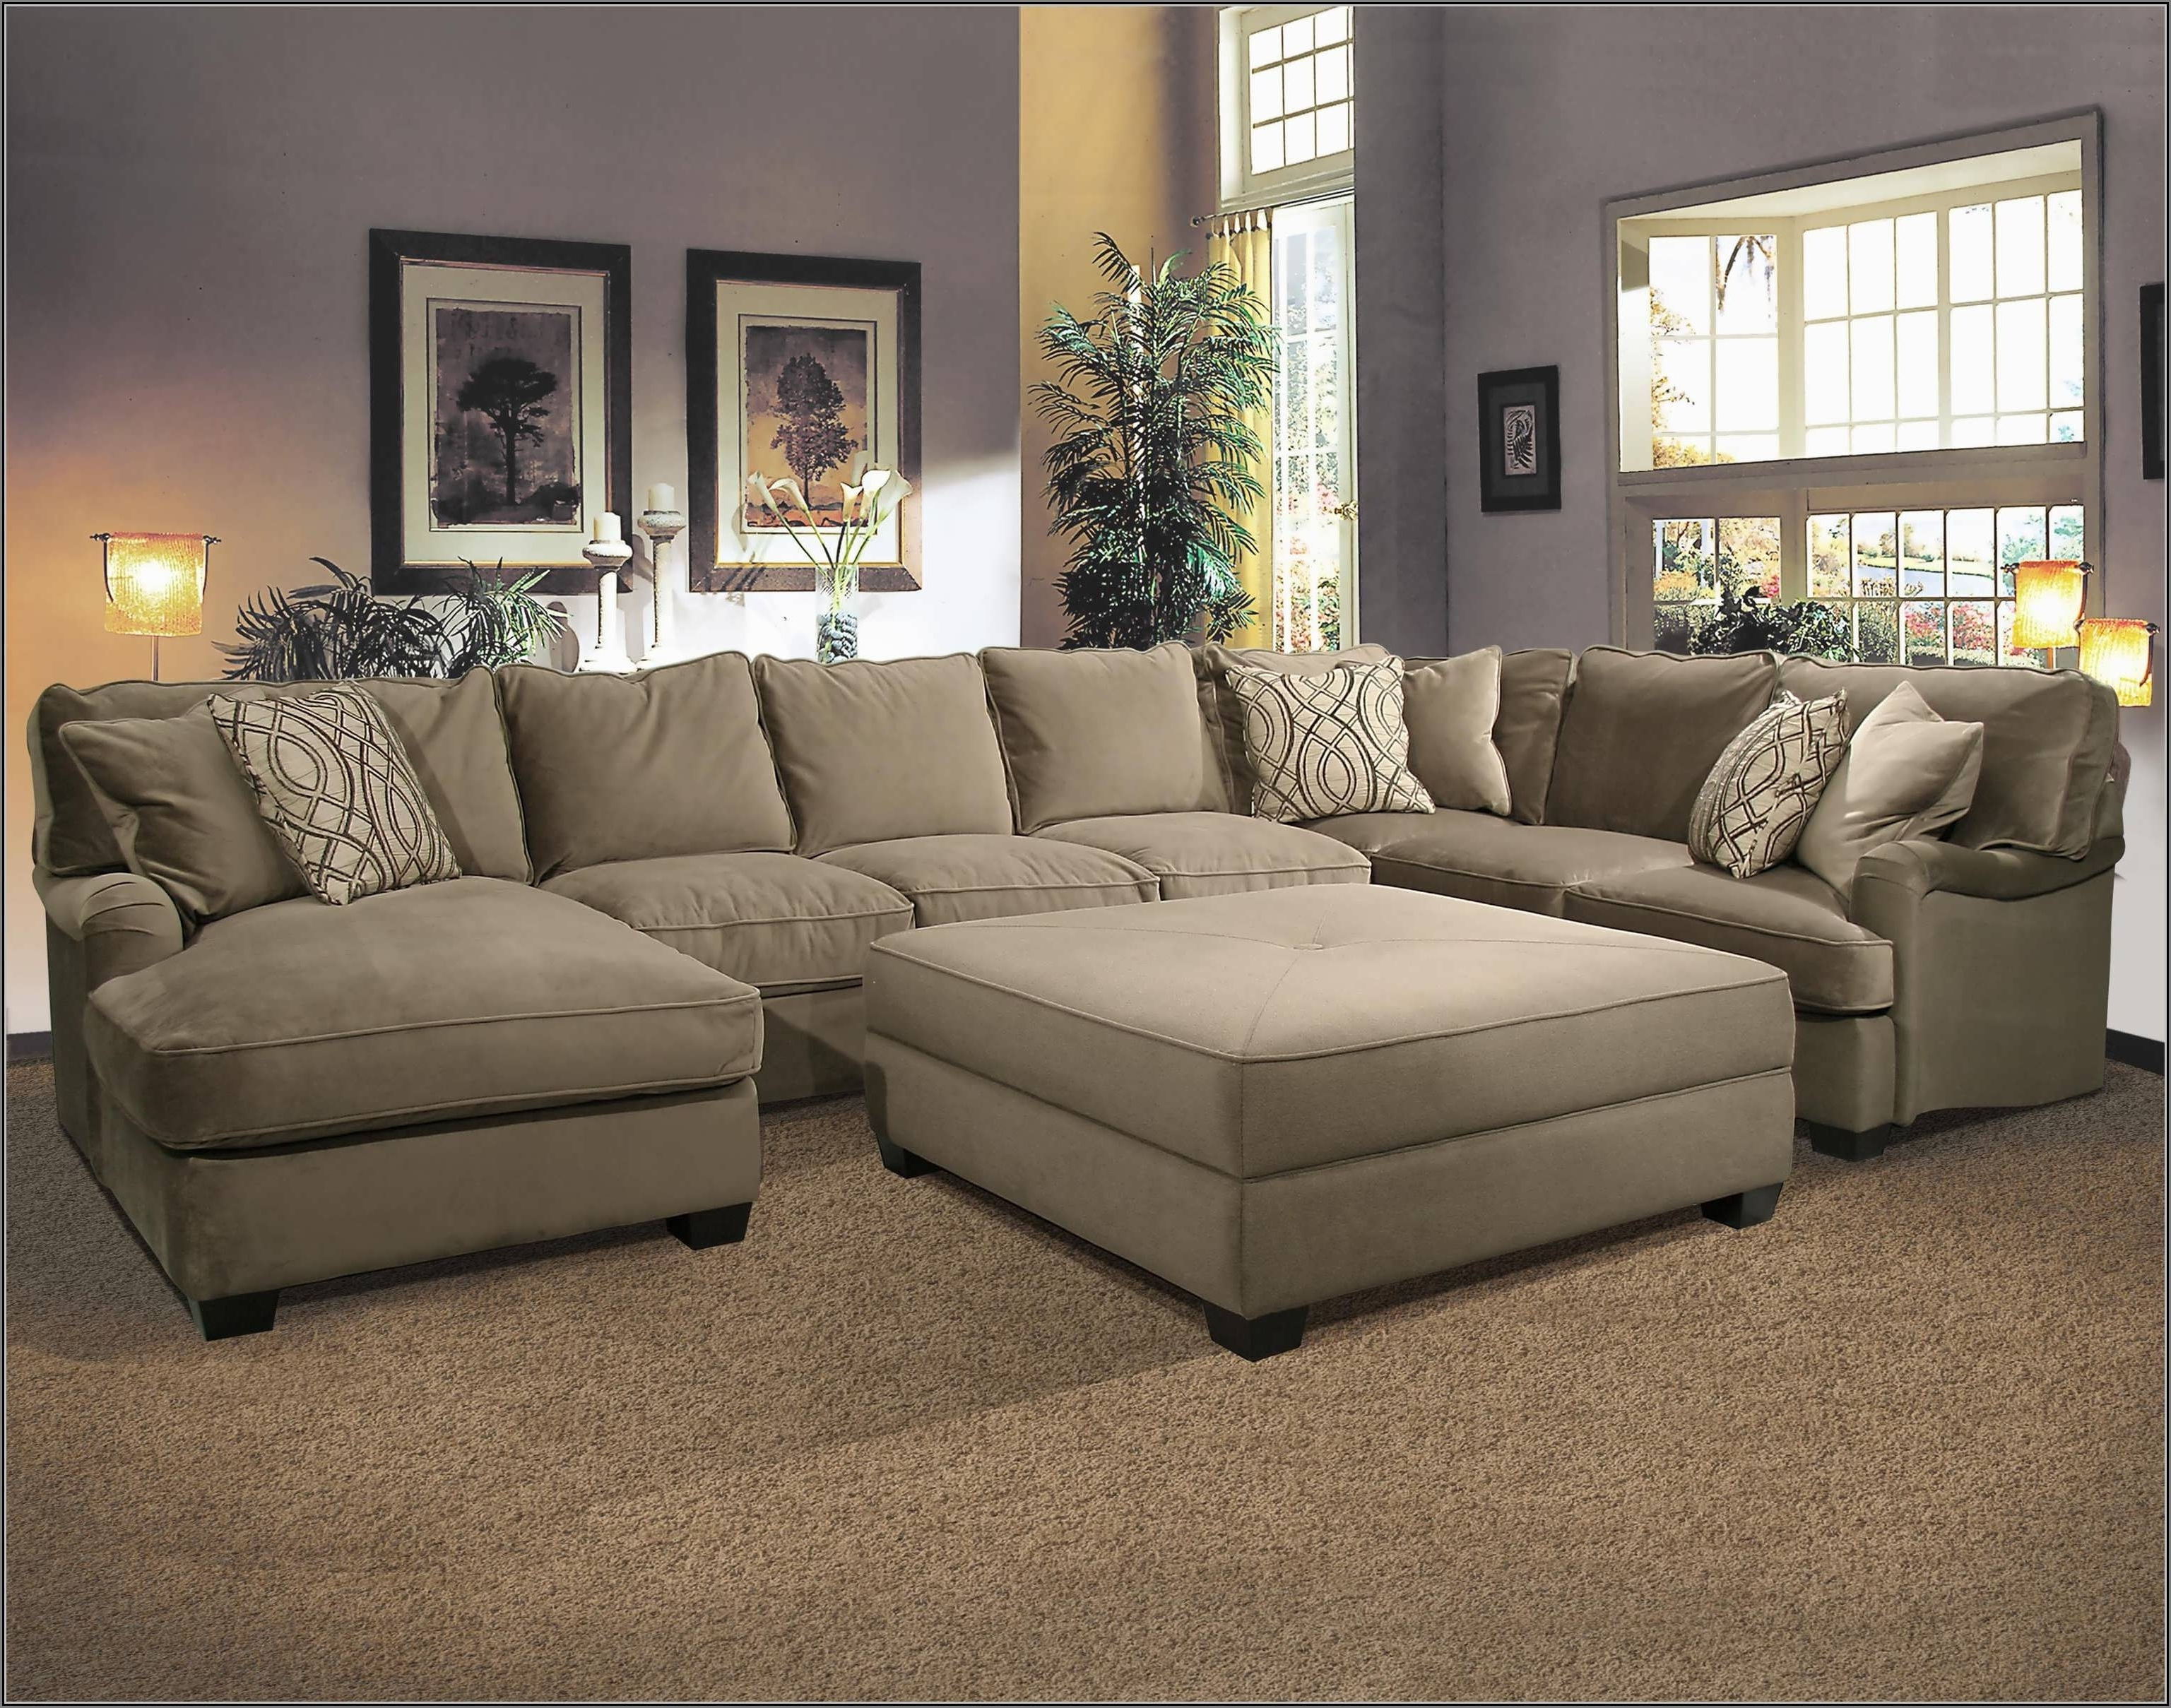 Livingroom : Small Sectional Living Room Sets Sofa Set Designs For With Current Sectional Sofas In Philippines (View 7 of 20)